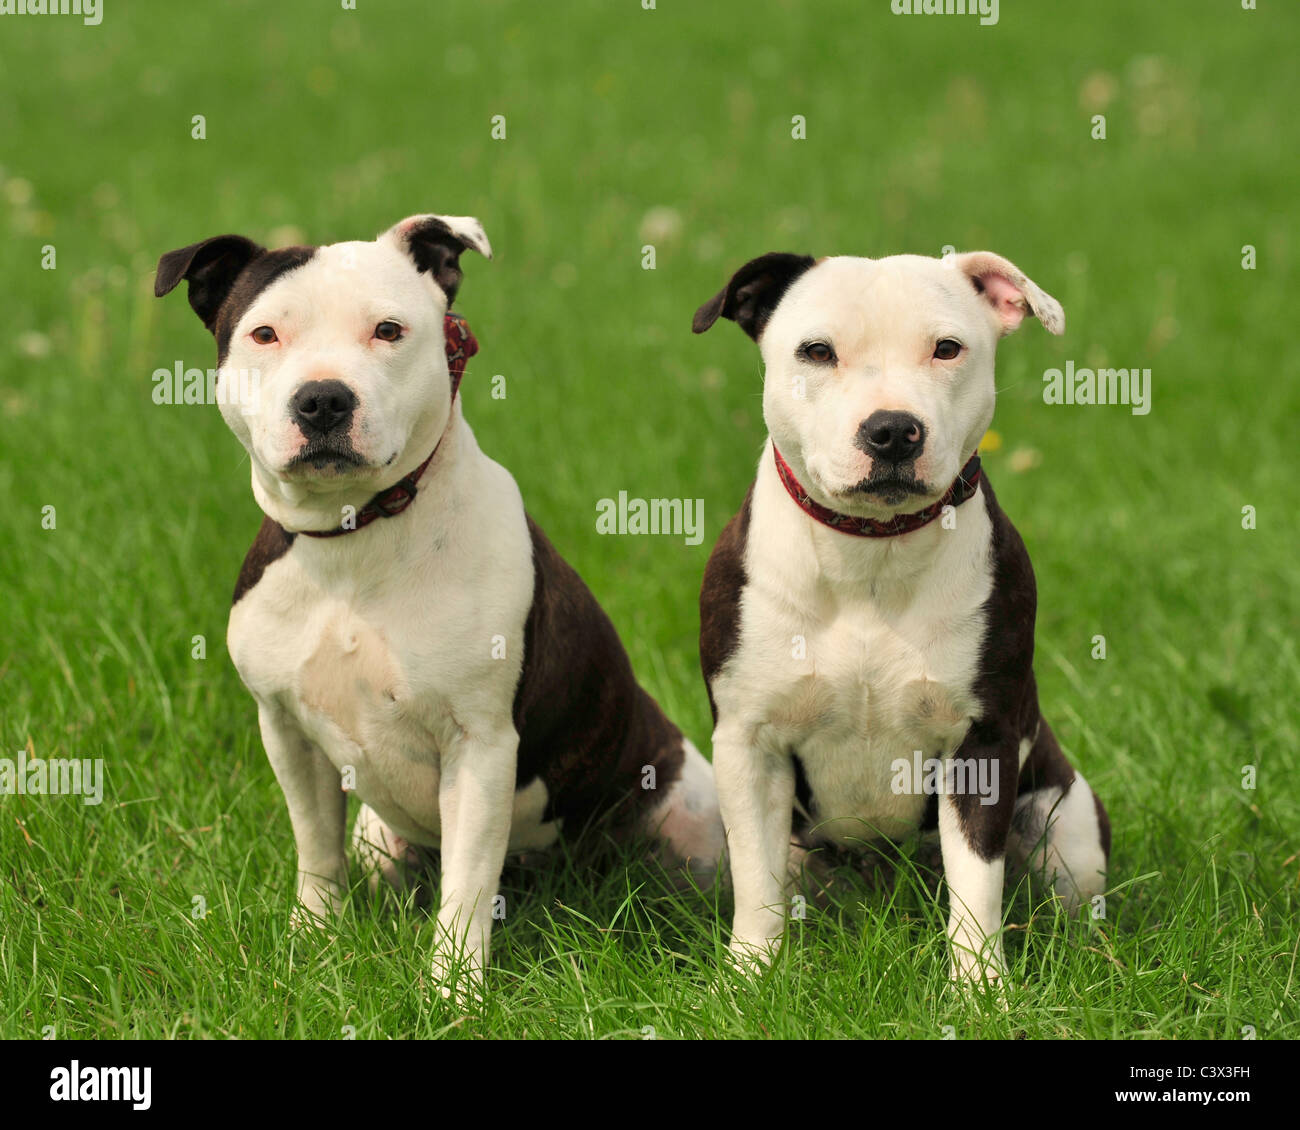 two staffordshire bull terriers - Stock Image